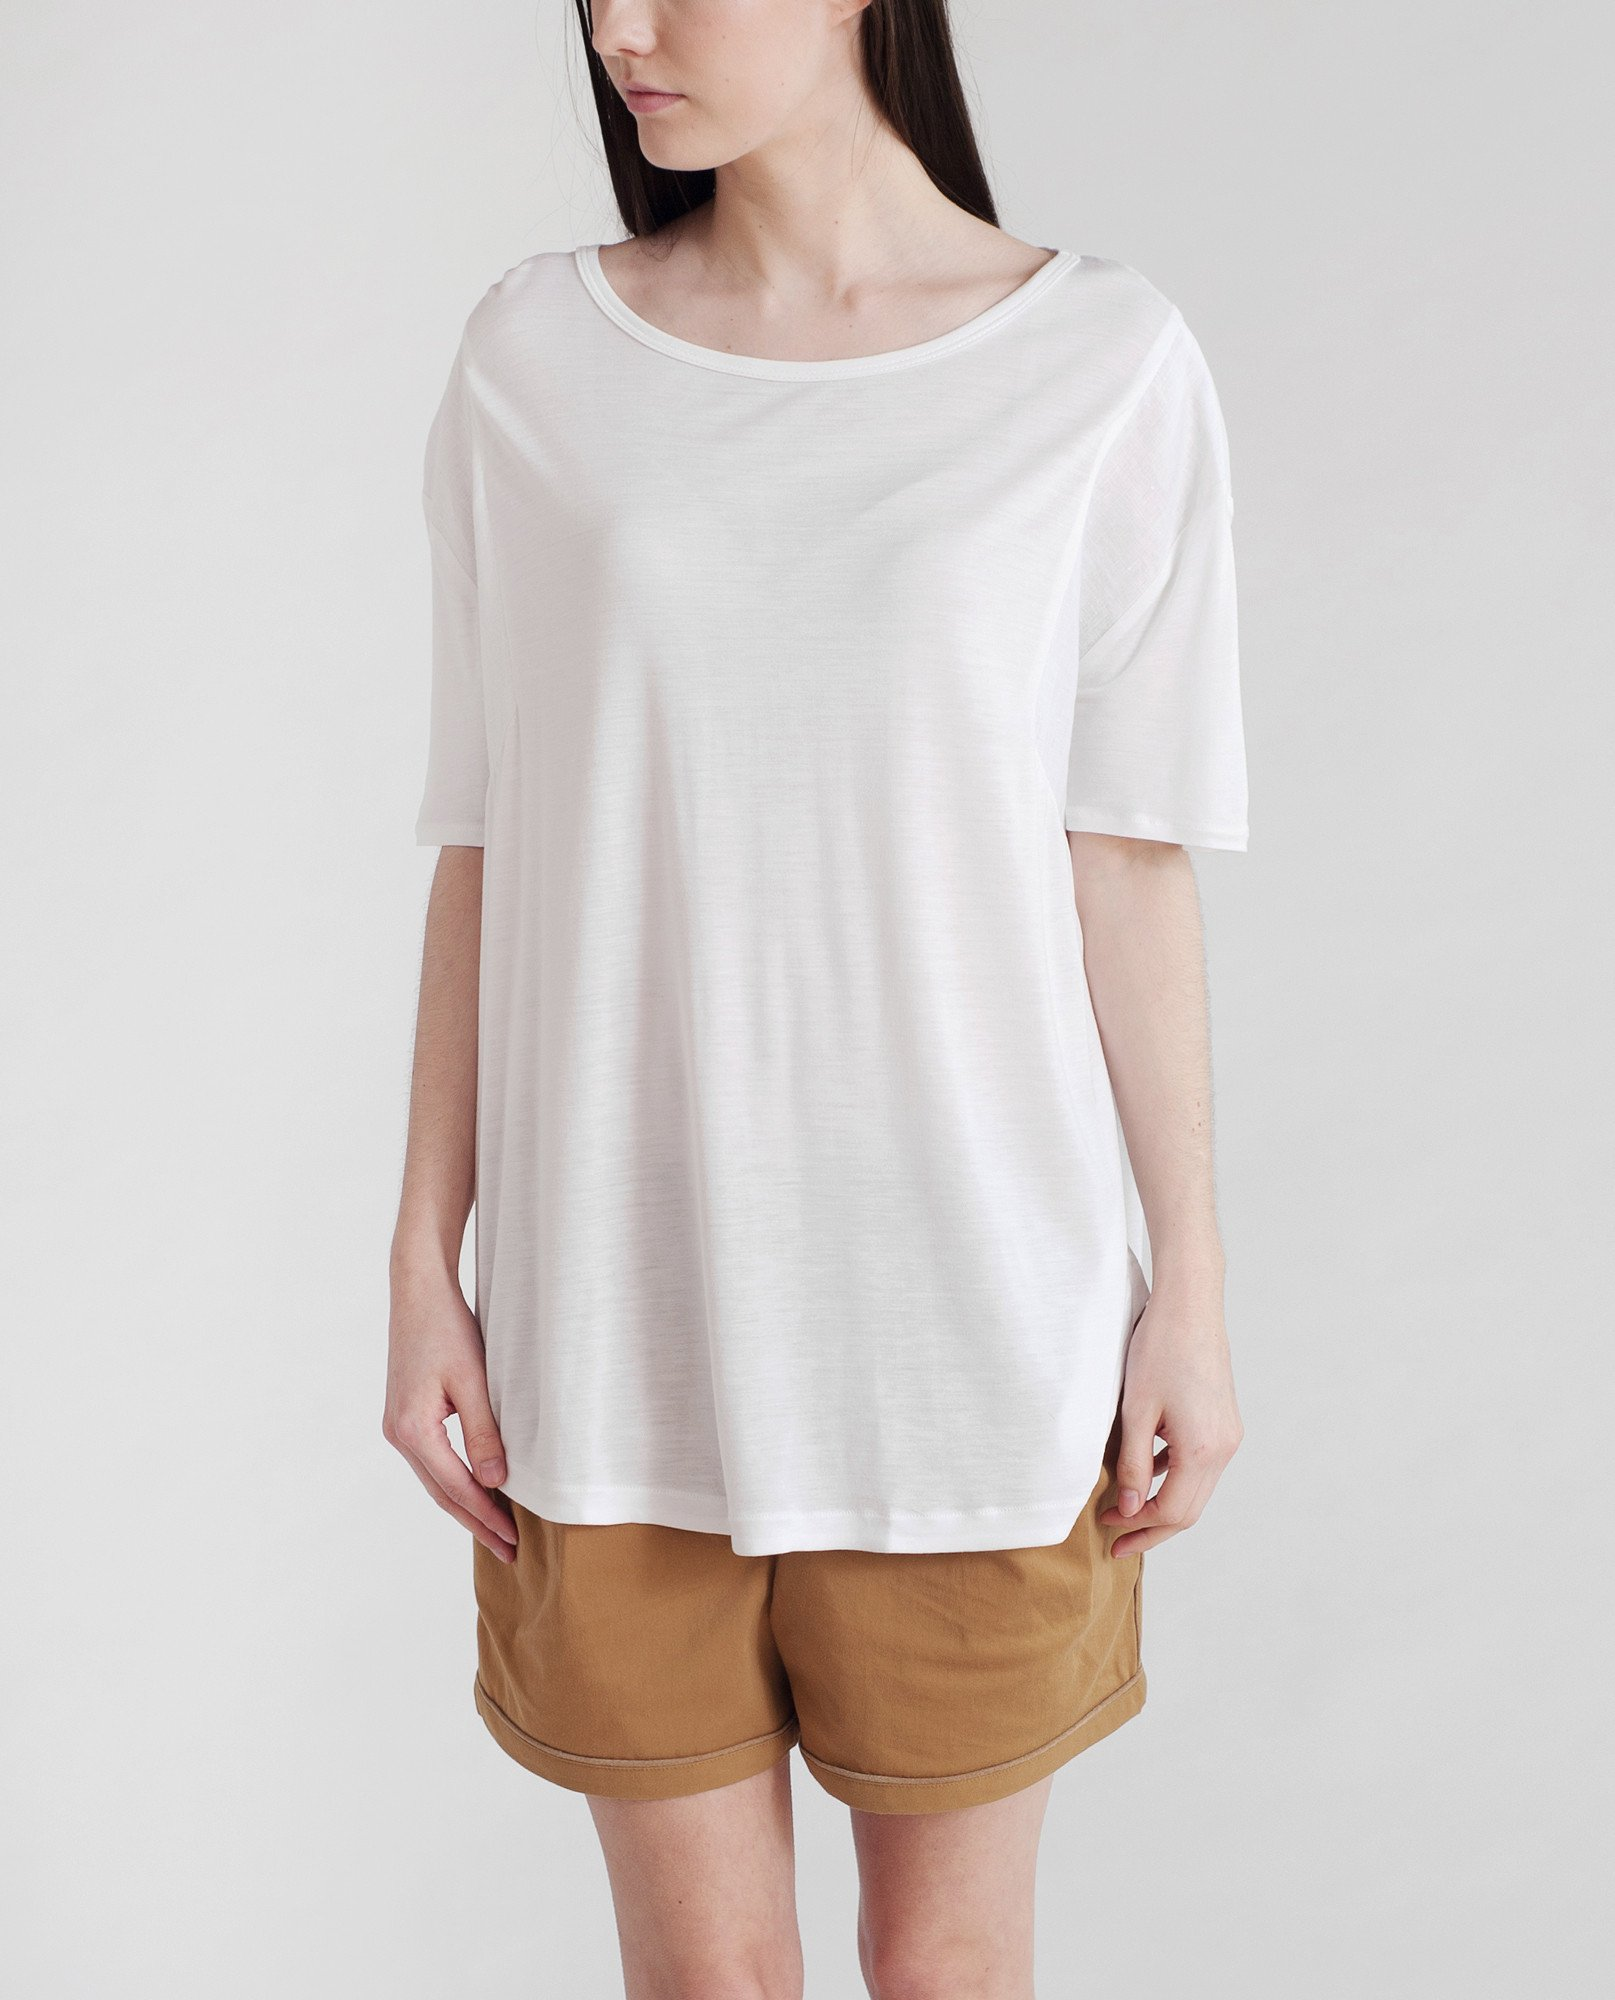 JACINTA Bamboo And Linen Top from Beaumont Organic